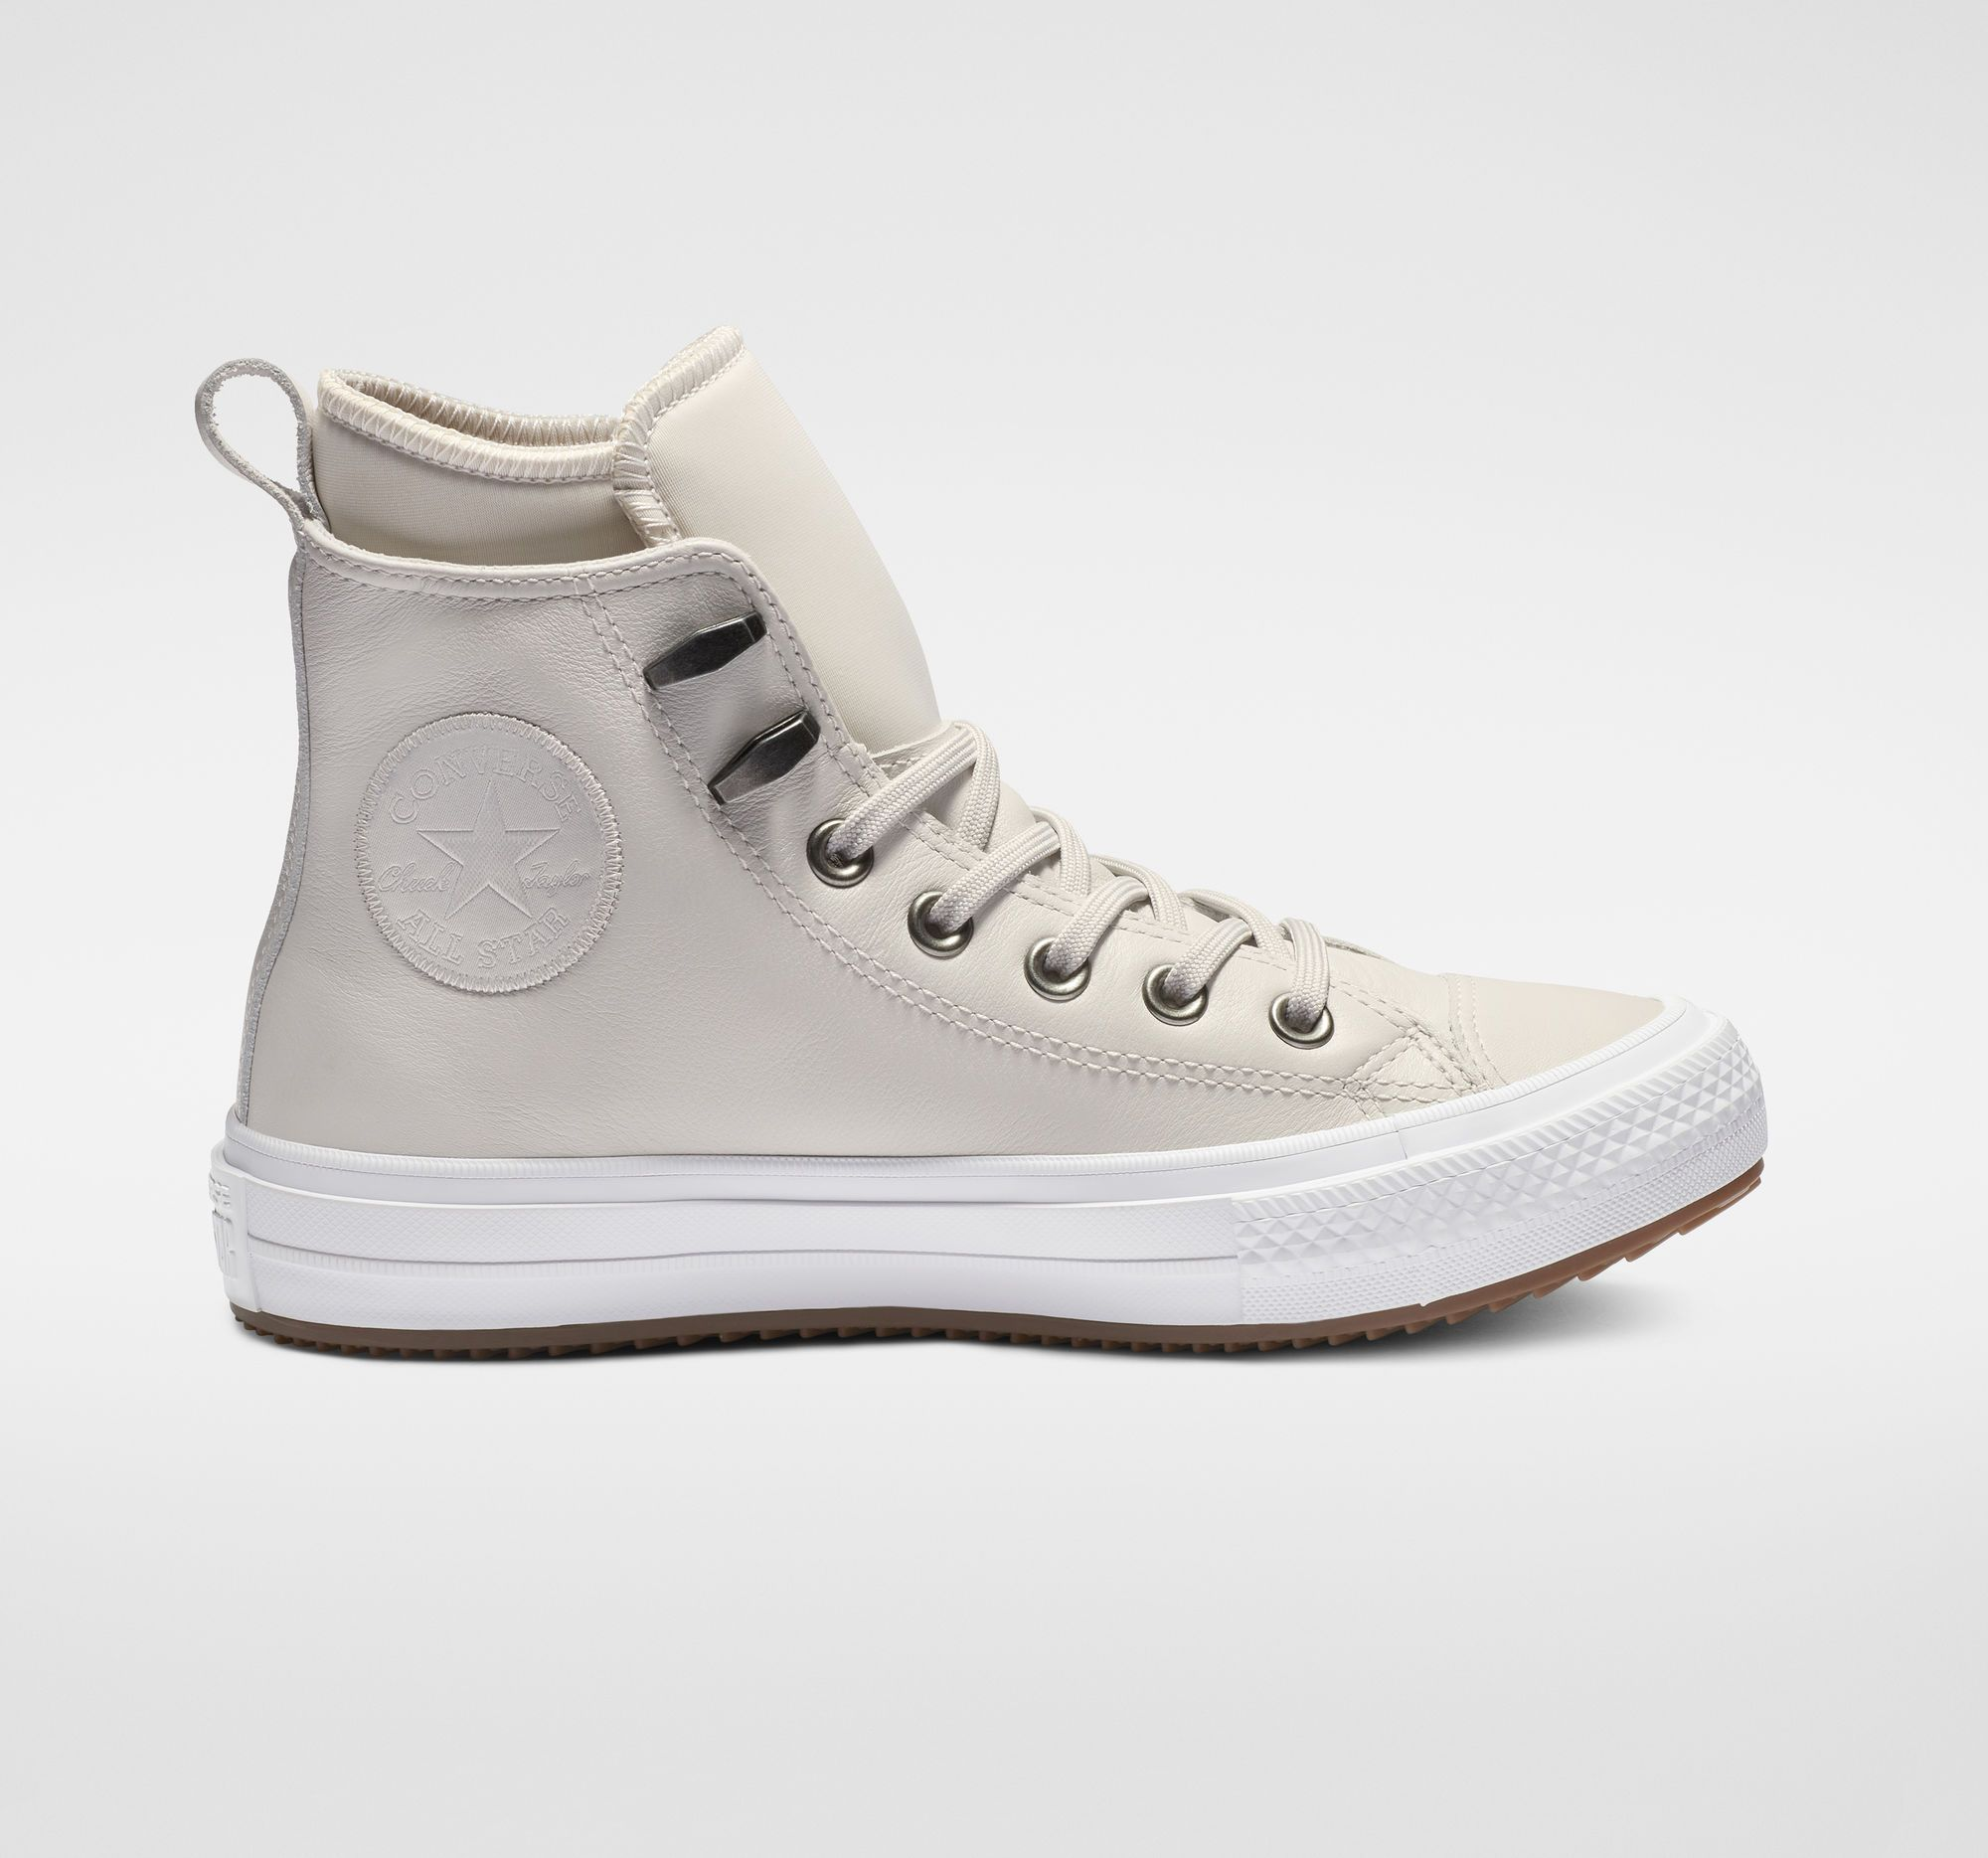 Chuck Taylor All Star Waterproof Leather Pale Putty High Top